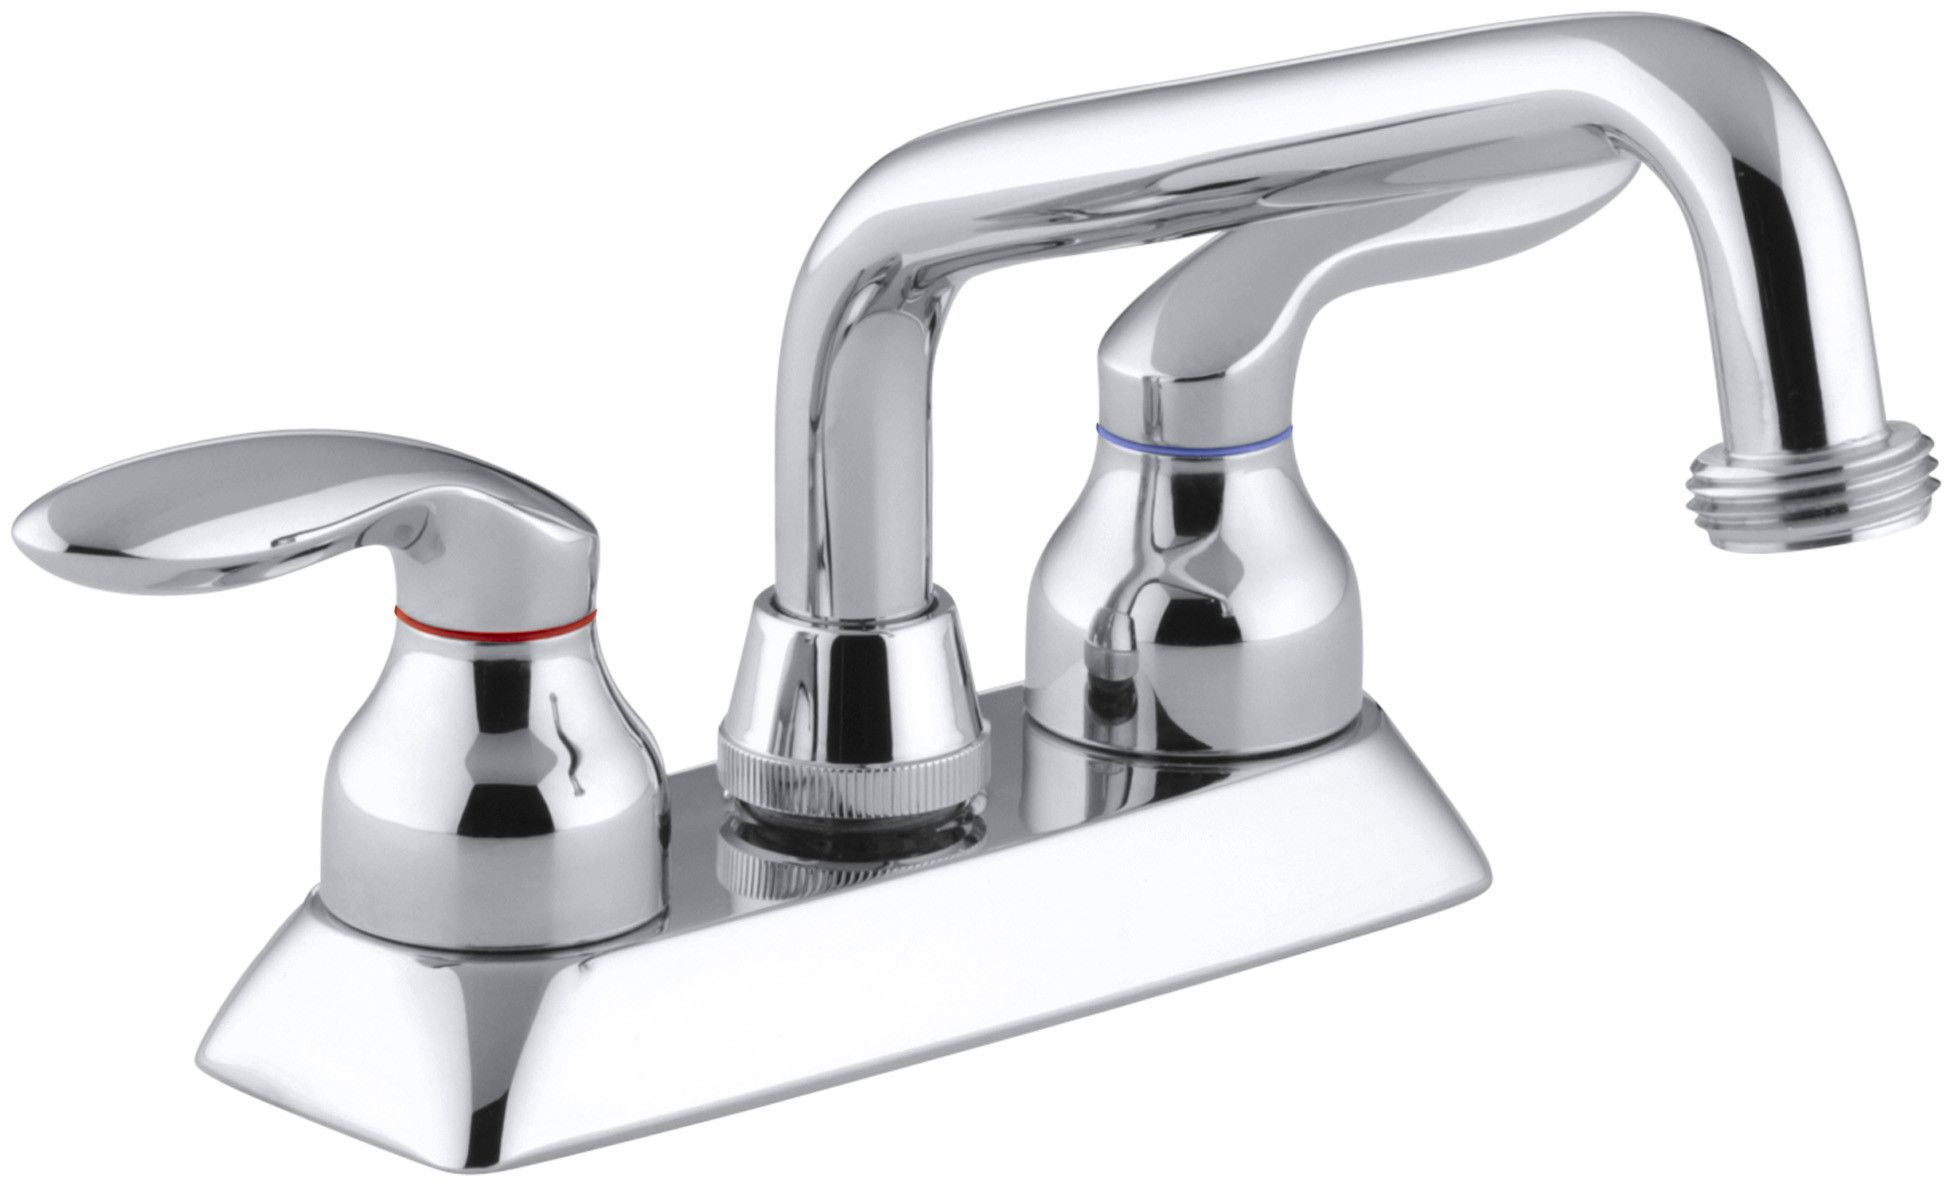 durable american utility faucets functional faucet with a wall sink from pin standard mount this